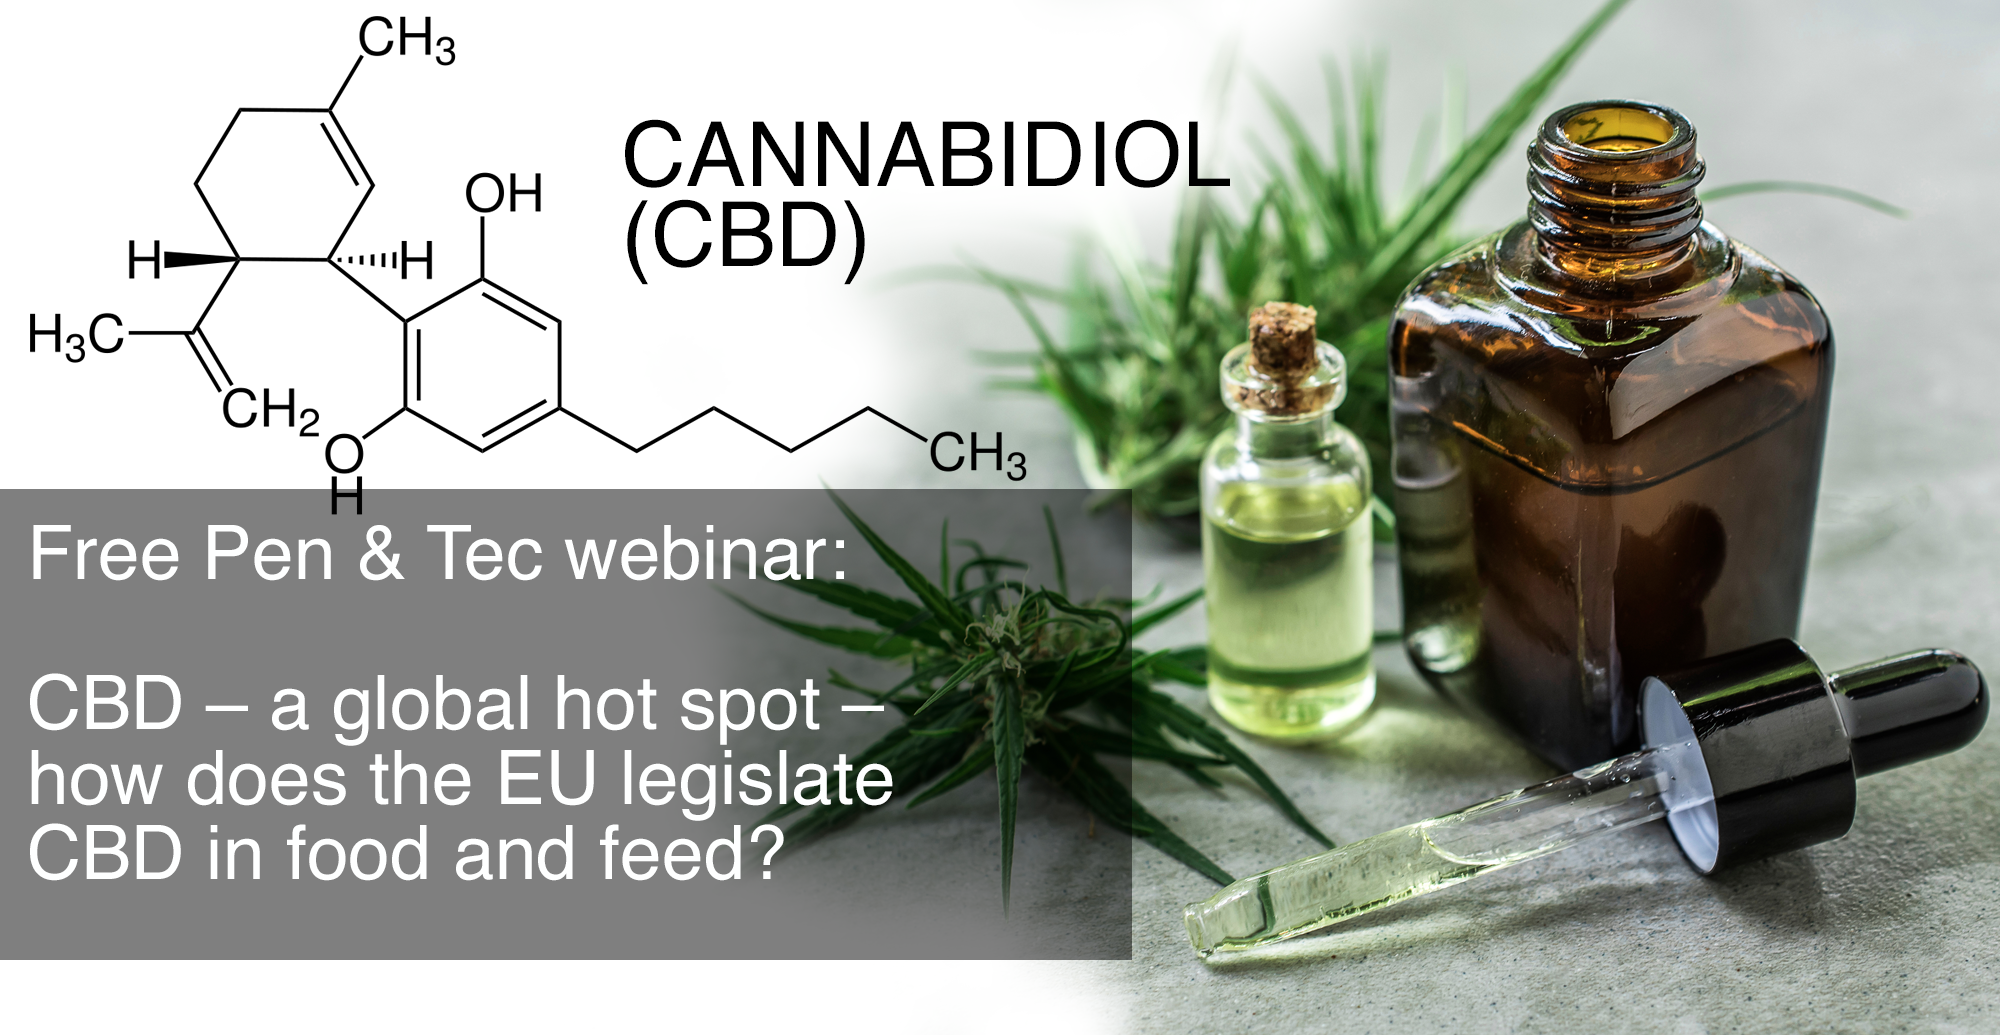 FREE Webinar: CBD – a global hot spot – how does the EU legislate CBD in food and feed?